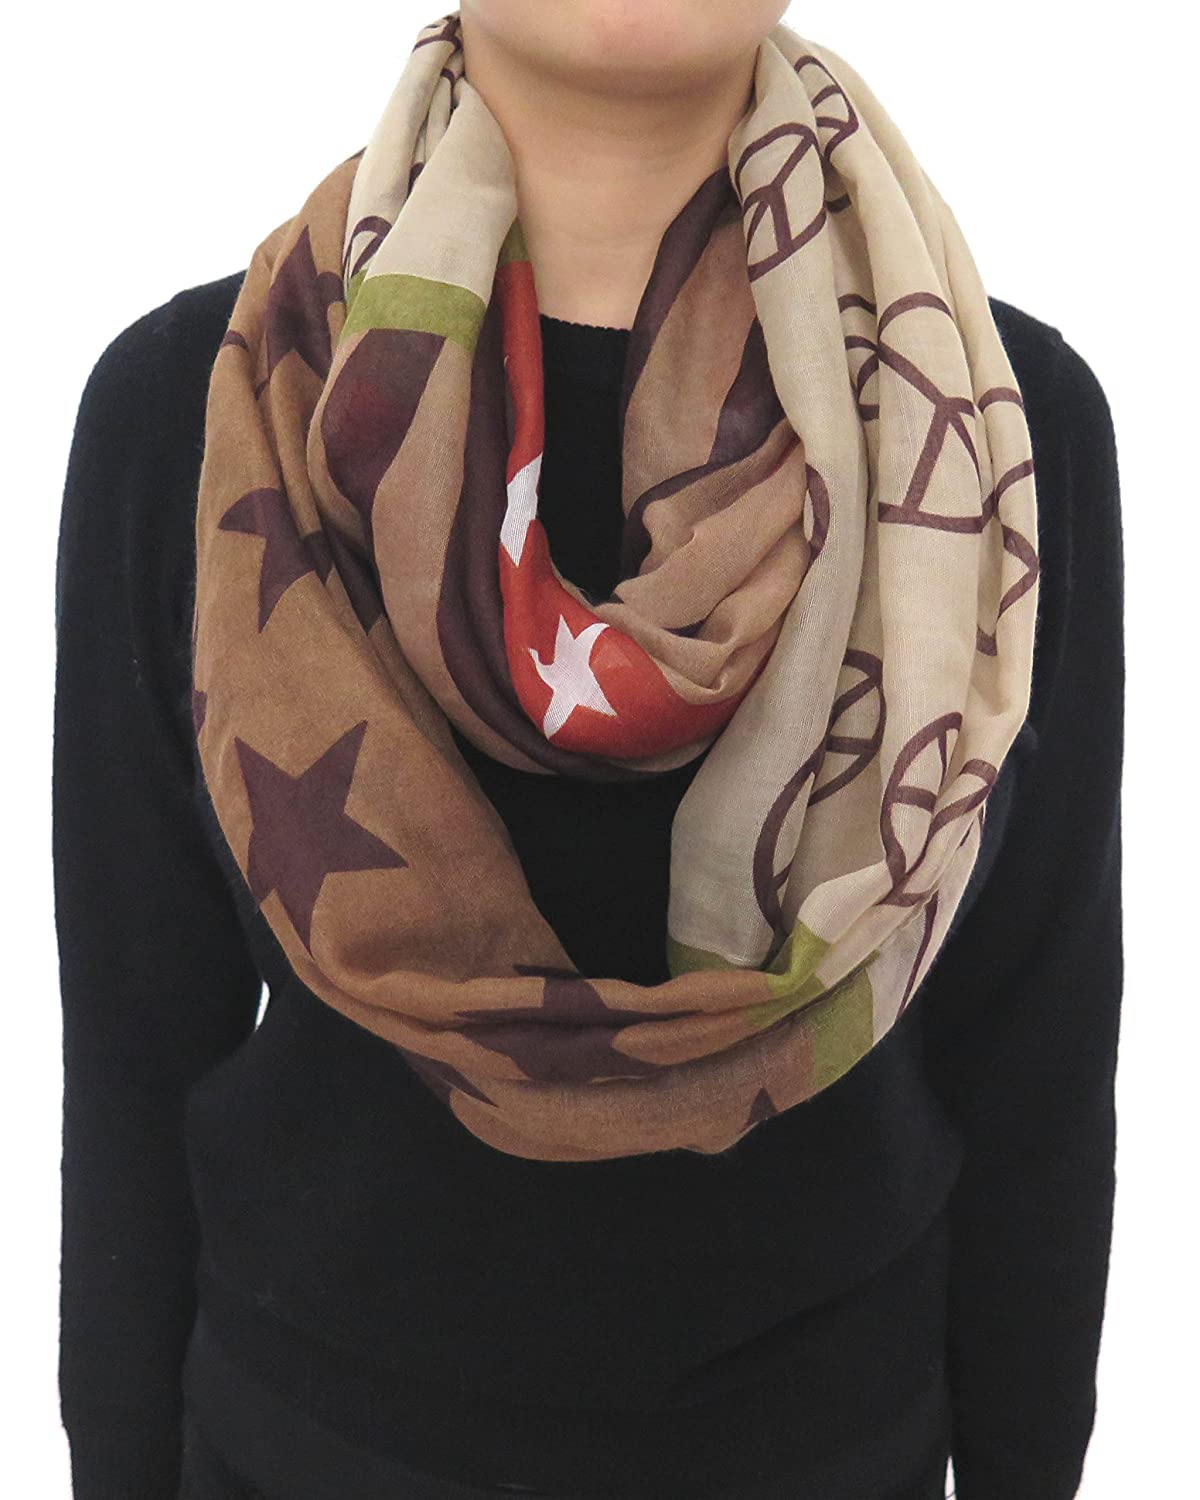 Lina & Lily Peace Sign Infinity Loop Scarf for Women Lightweight